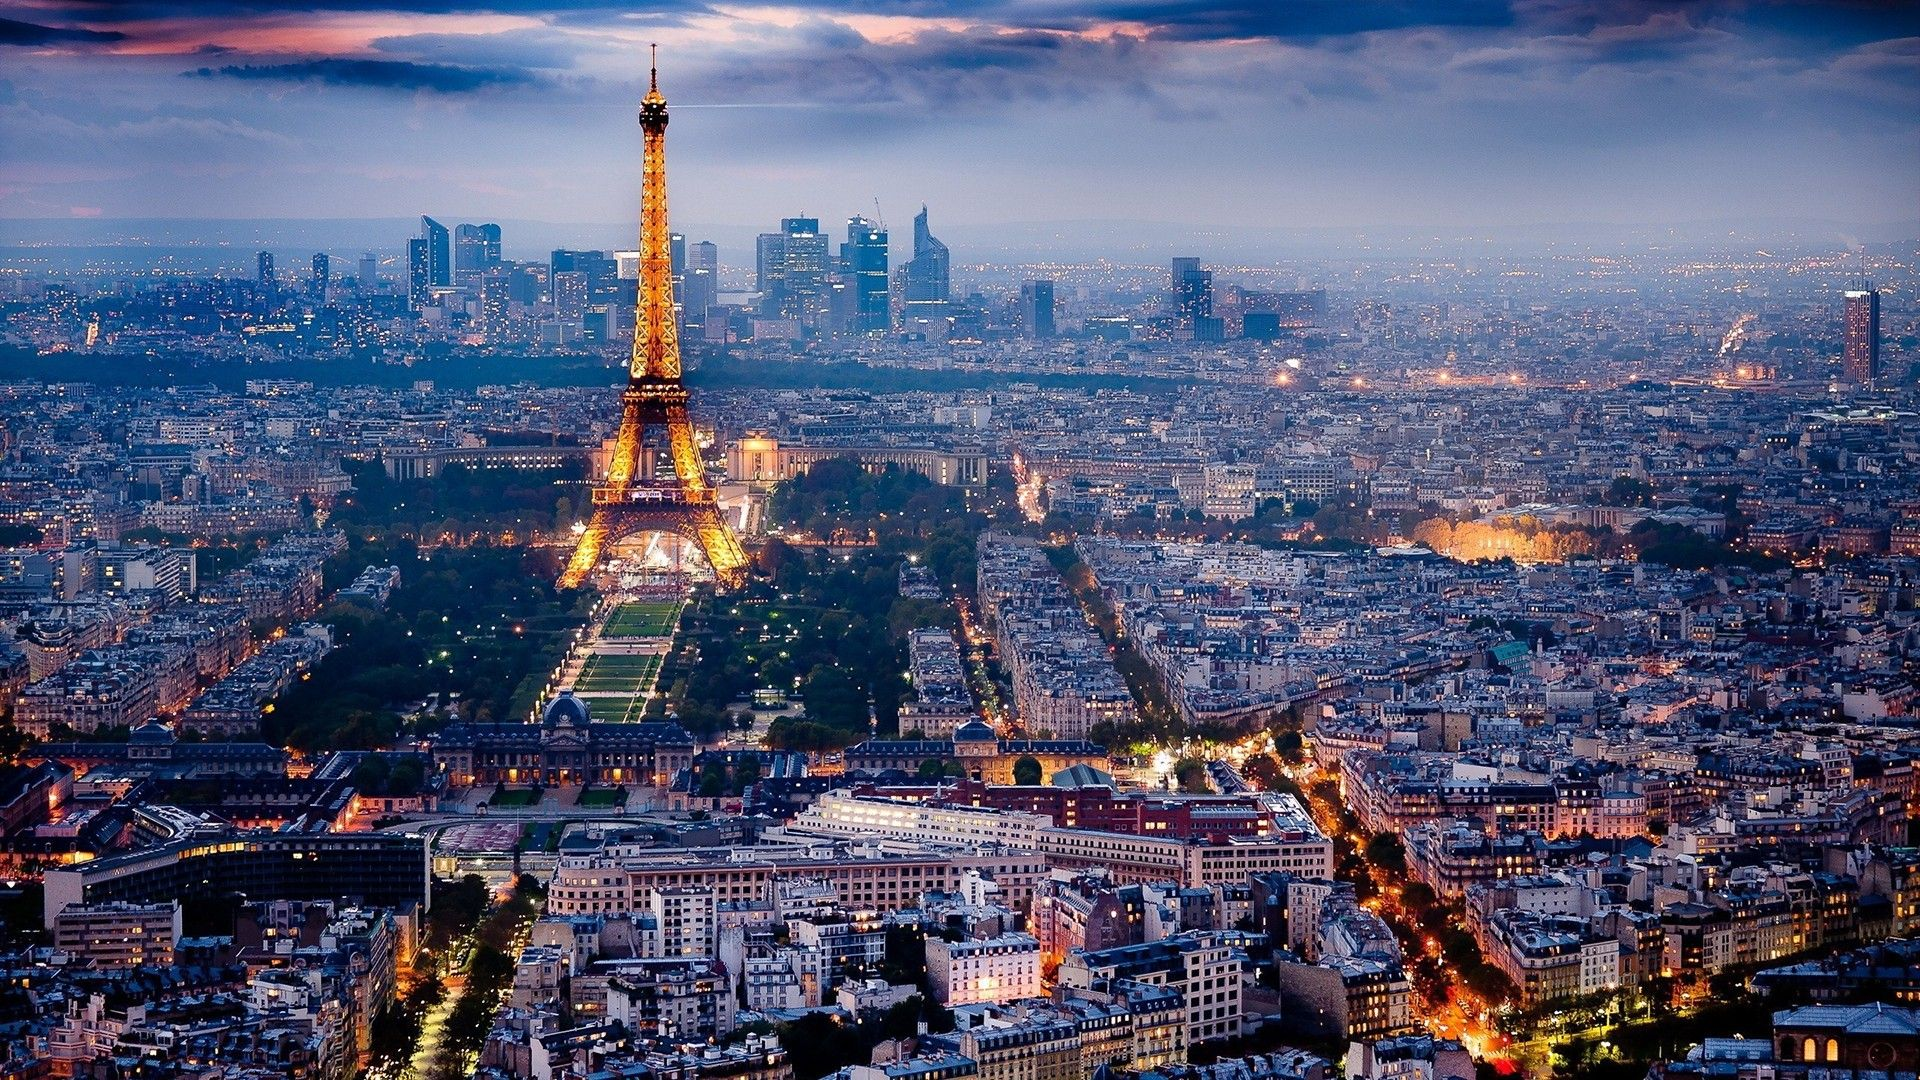 Paris Skyline Wallpapers Top Free Paris Skyline Backgrounds Wallpaperaccess